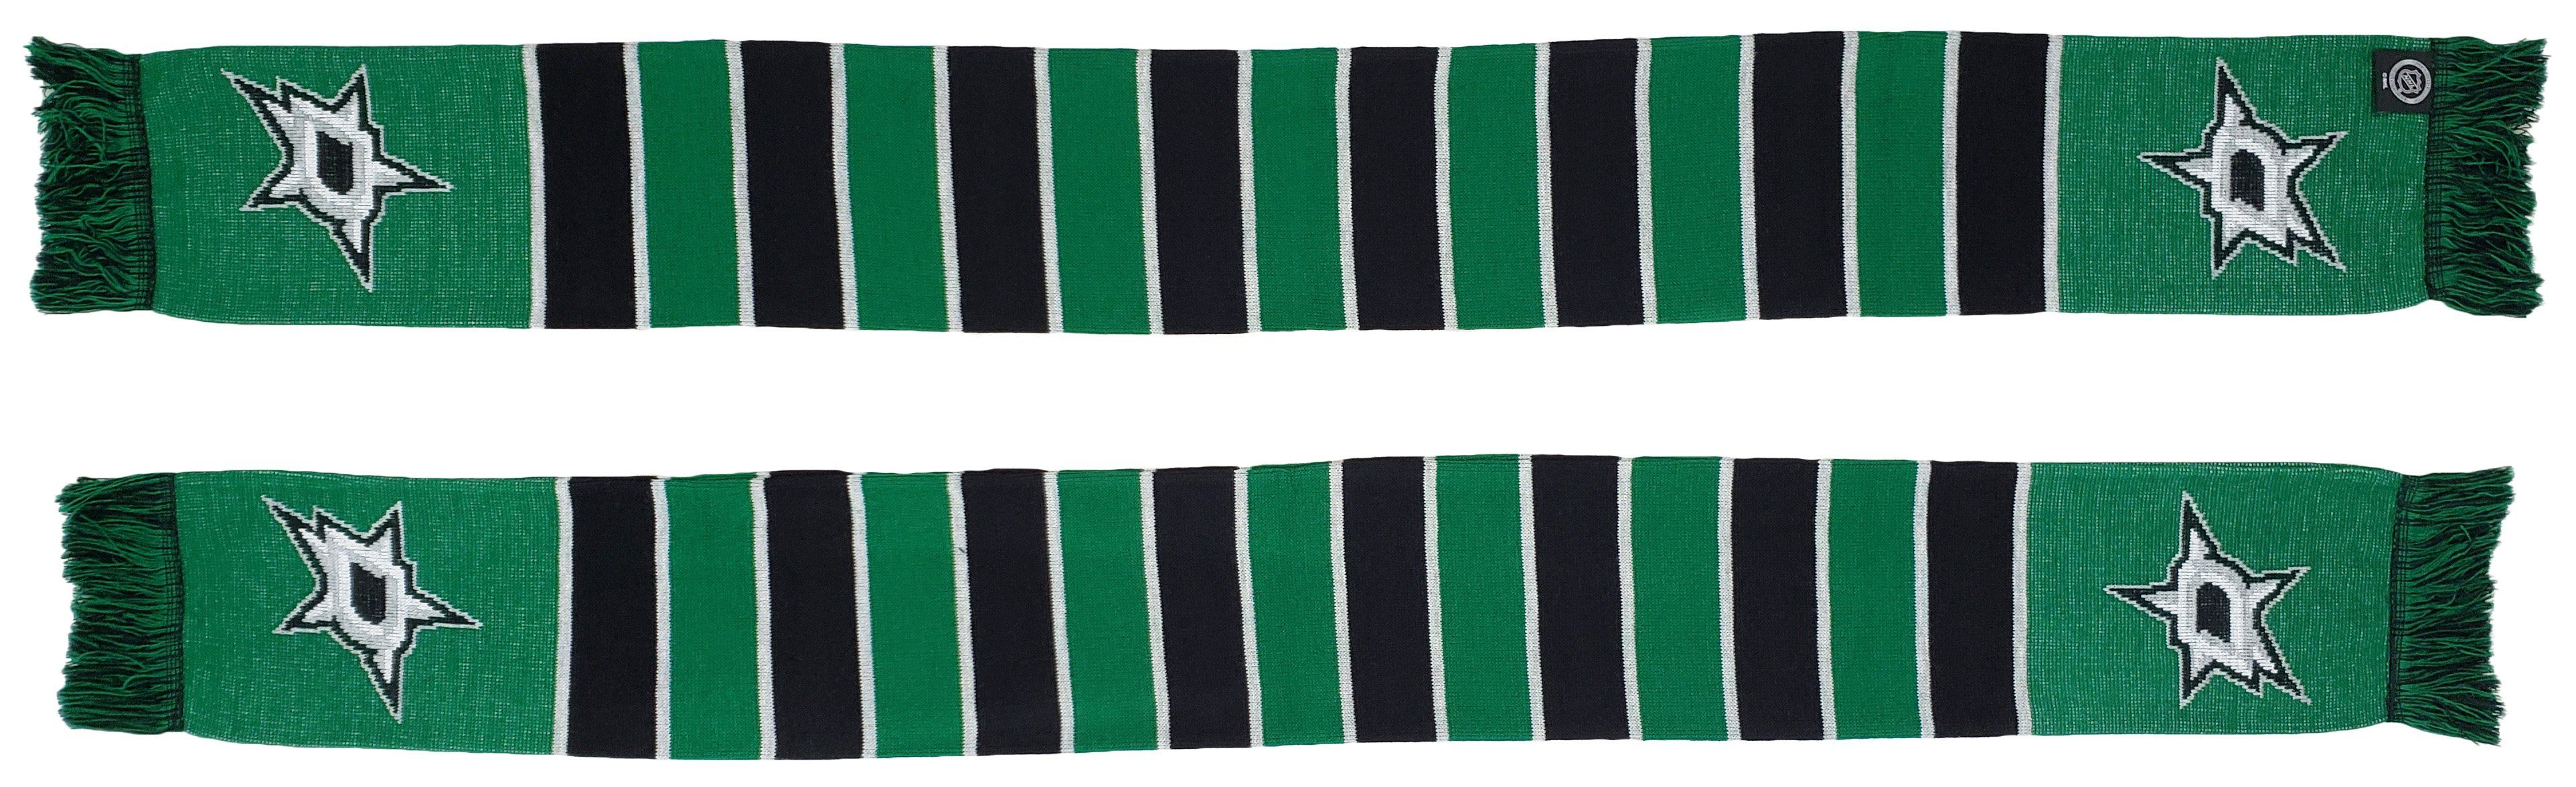 DALLAS STARS SCARF - Traditional Bar Scarf